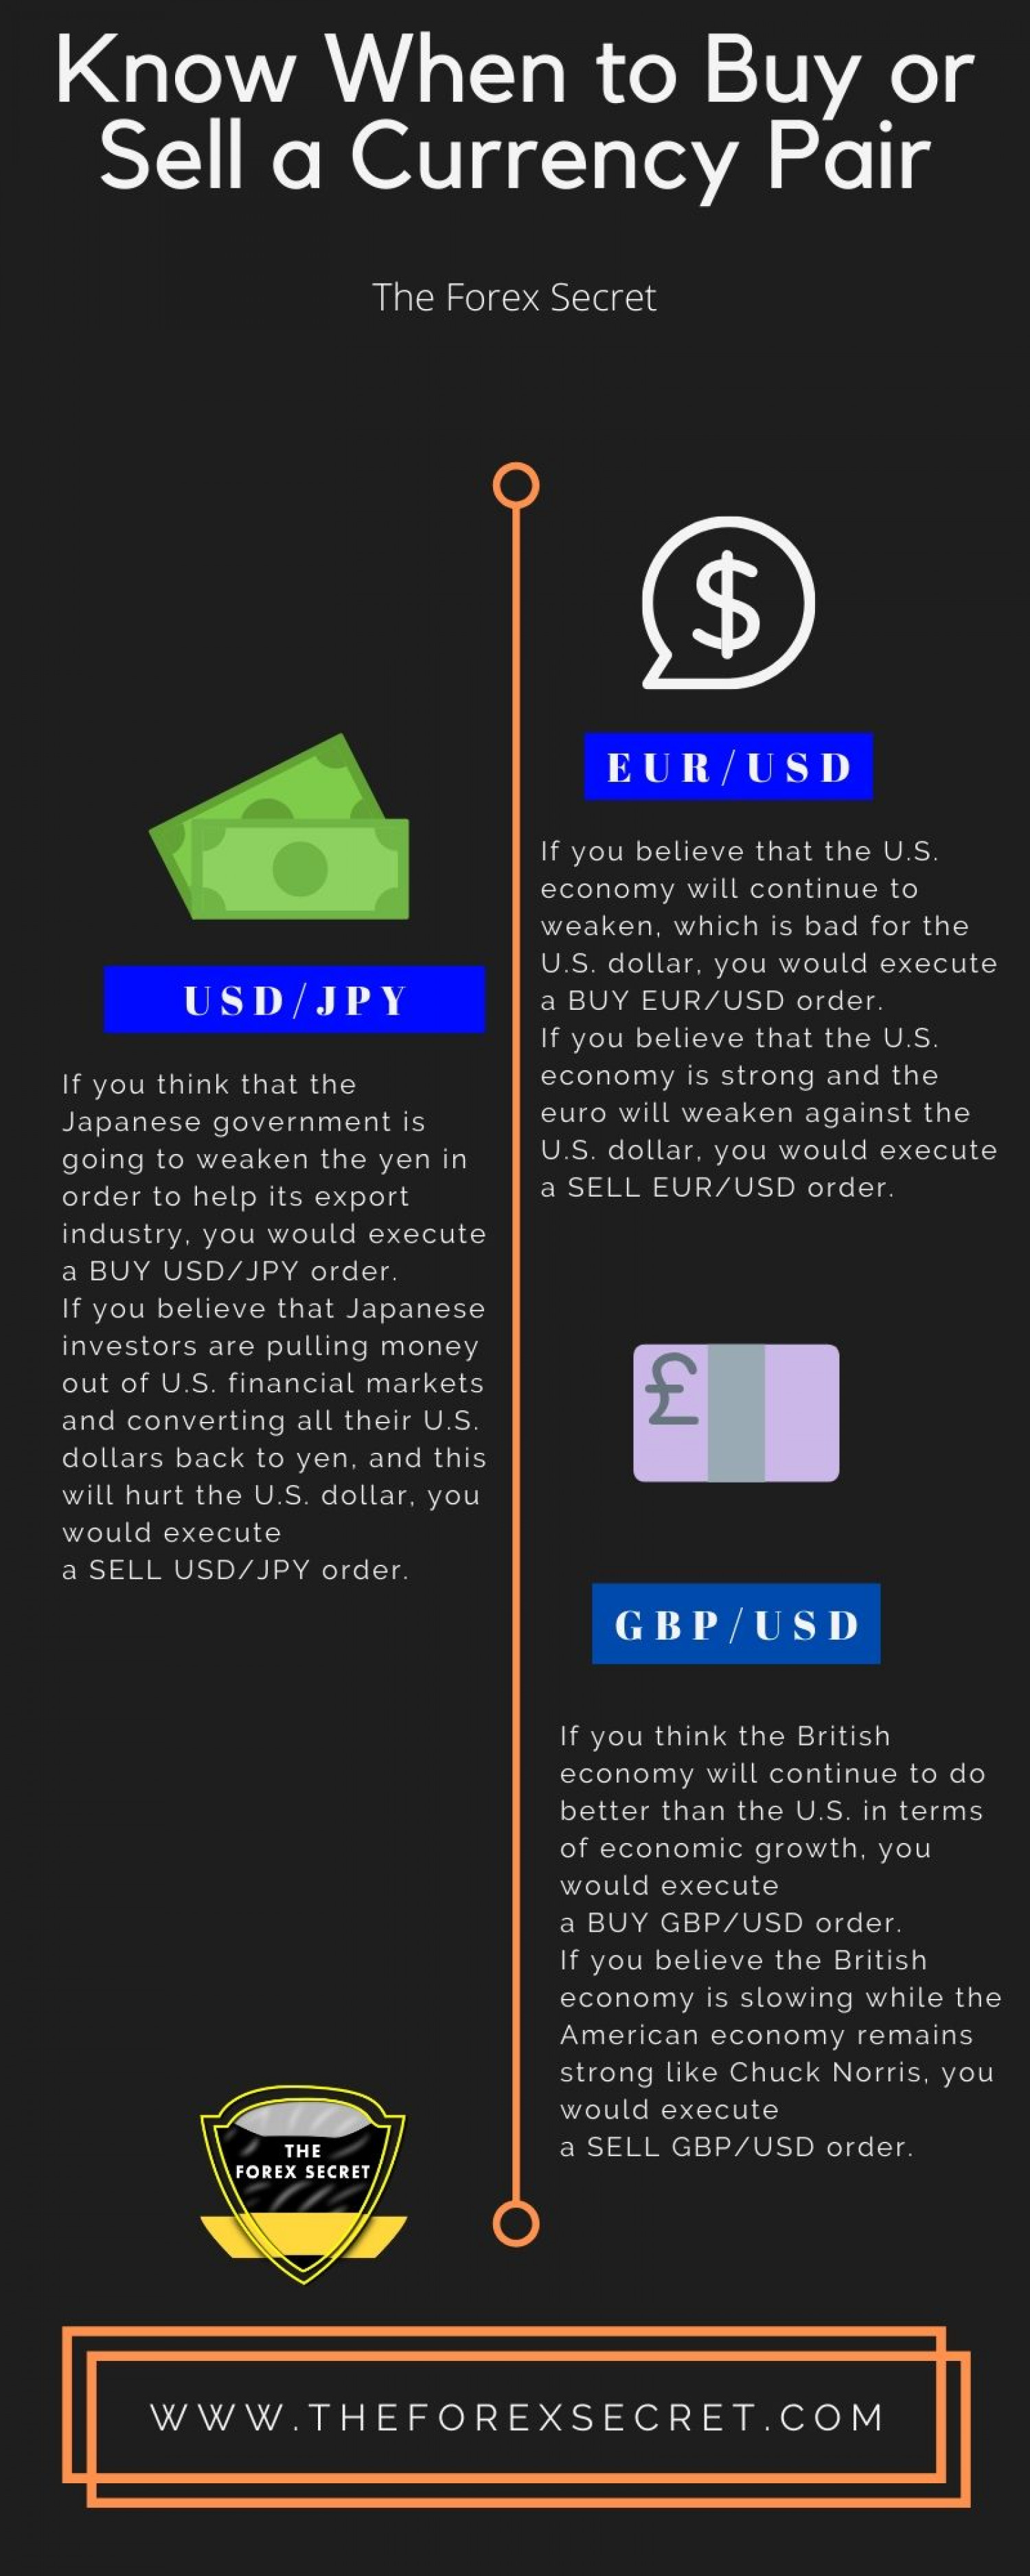 Know when to buy or sell a currency pair Infographic